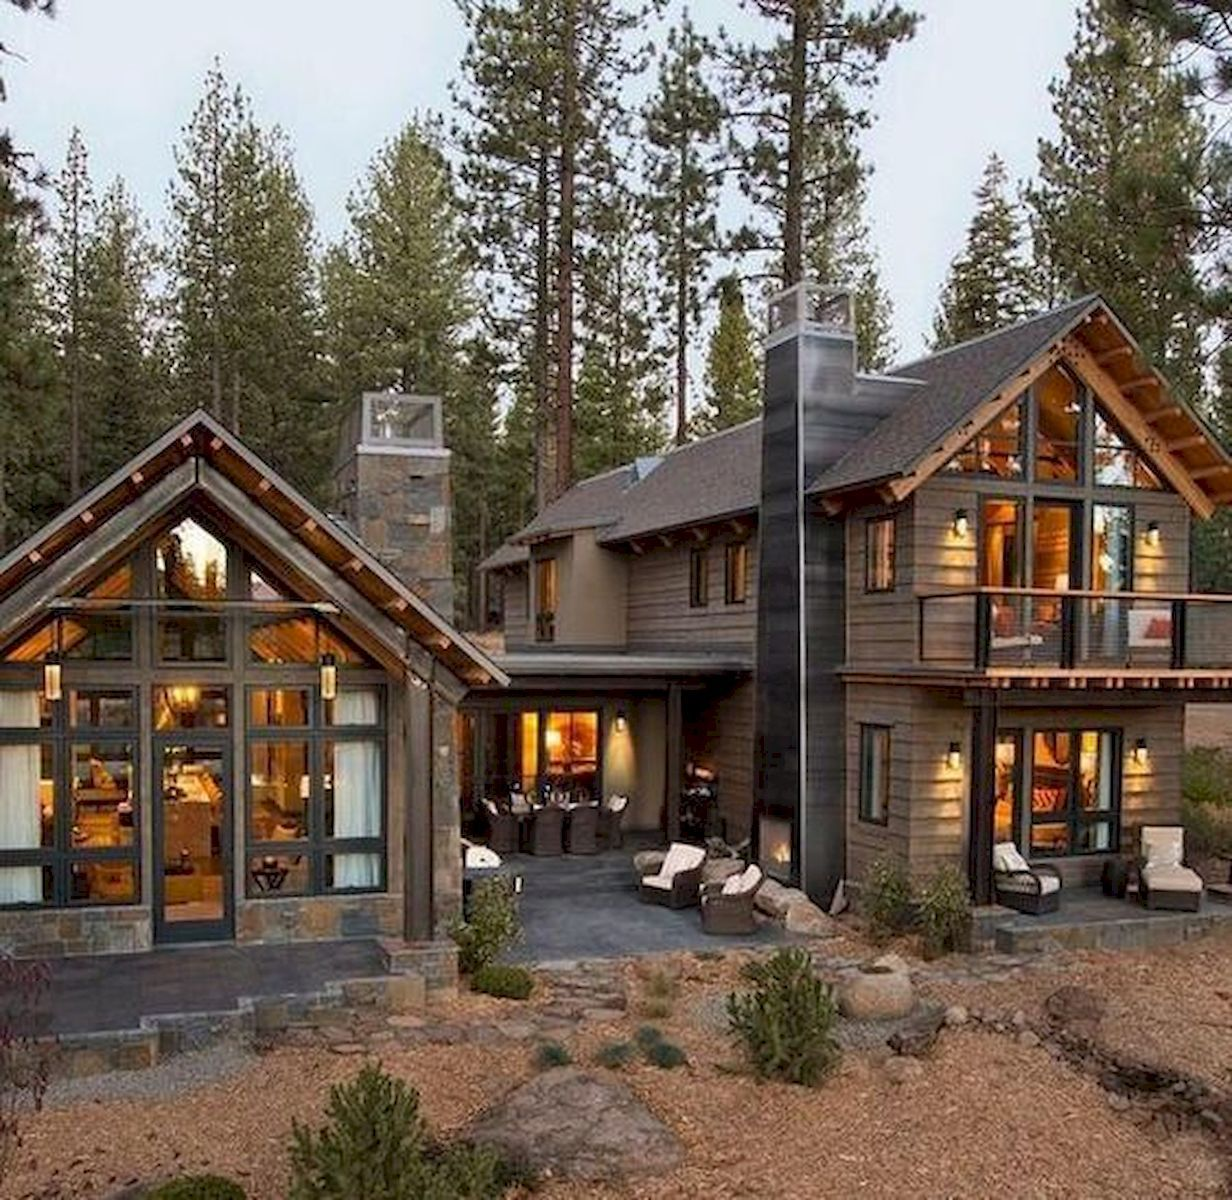 Adorable 75 Great Log Cabin Homes Plans Design Ideas Https Livingmarch Com 75 Great Log Cabin Homes Plans Log Cabin Homes Dream House House Designs Exterior